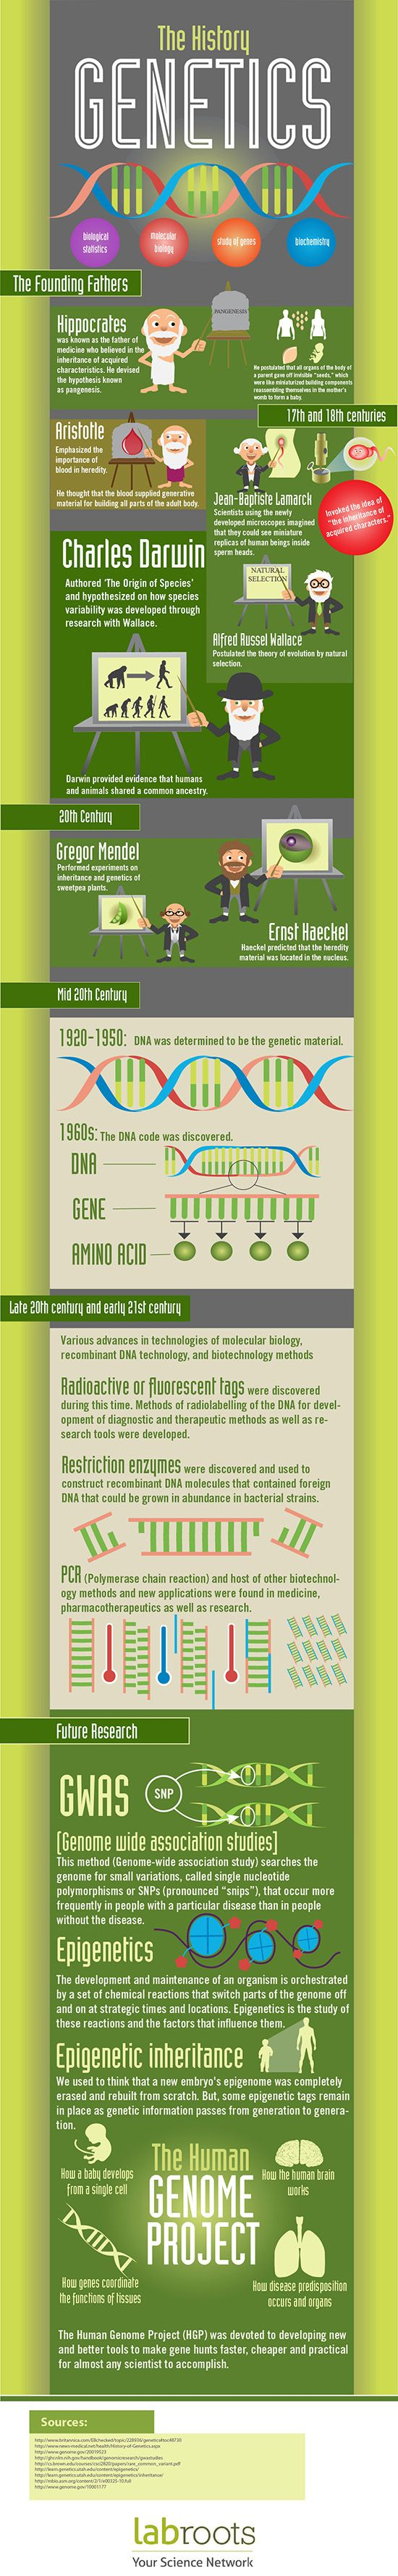 The History of Genetics #Infographics — Lightscap3s.com